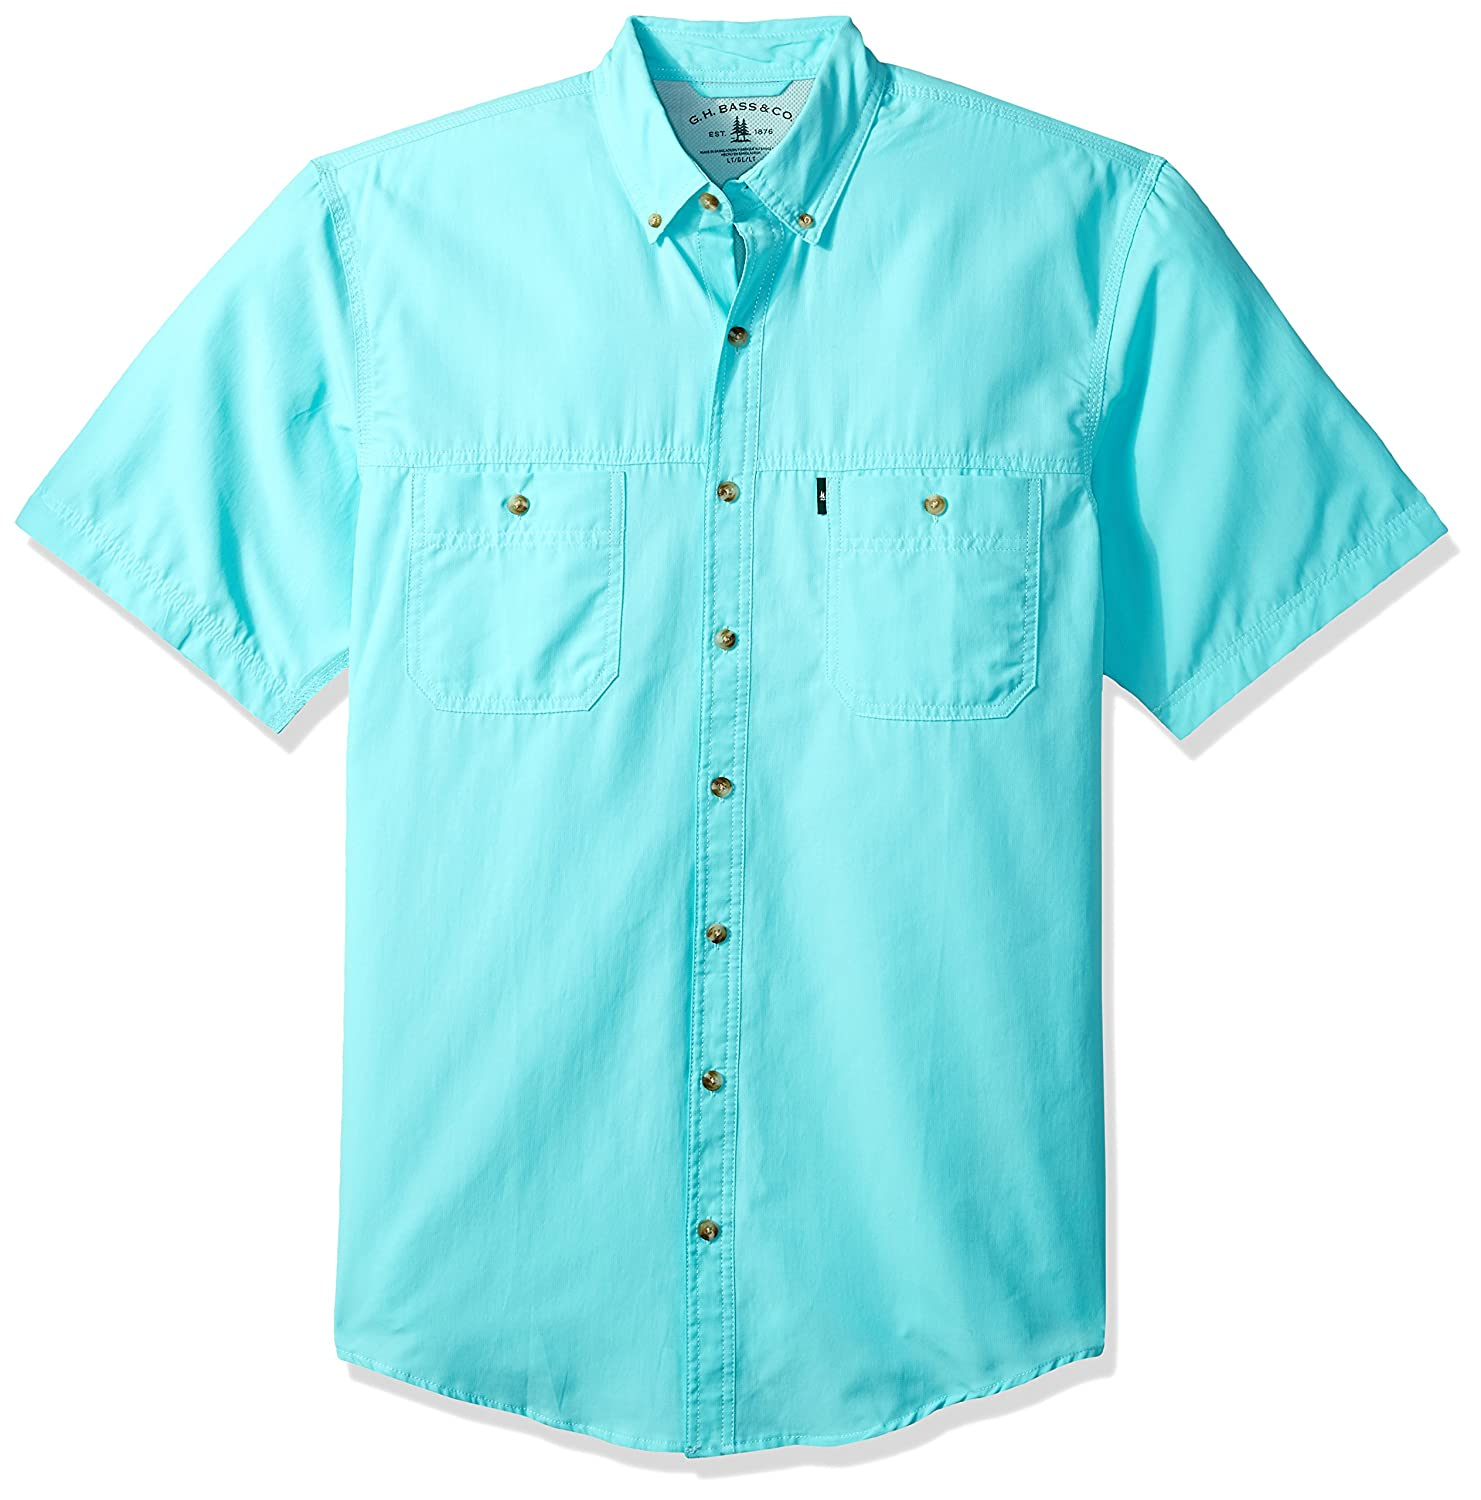 G.H. Bass & Co. Mens Big and Tall Explorer Fancy Short Sleeve Button Down Shirt 527W842